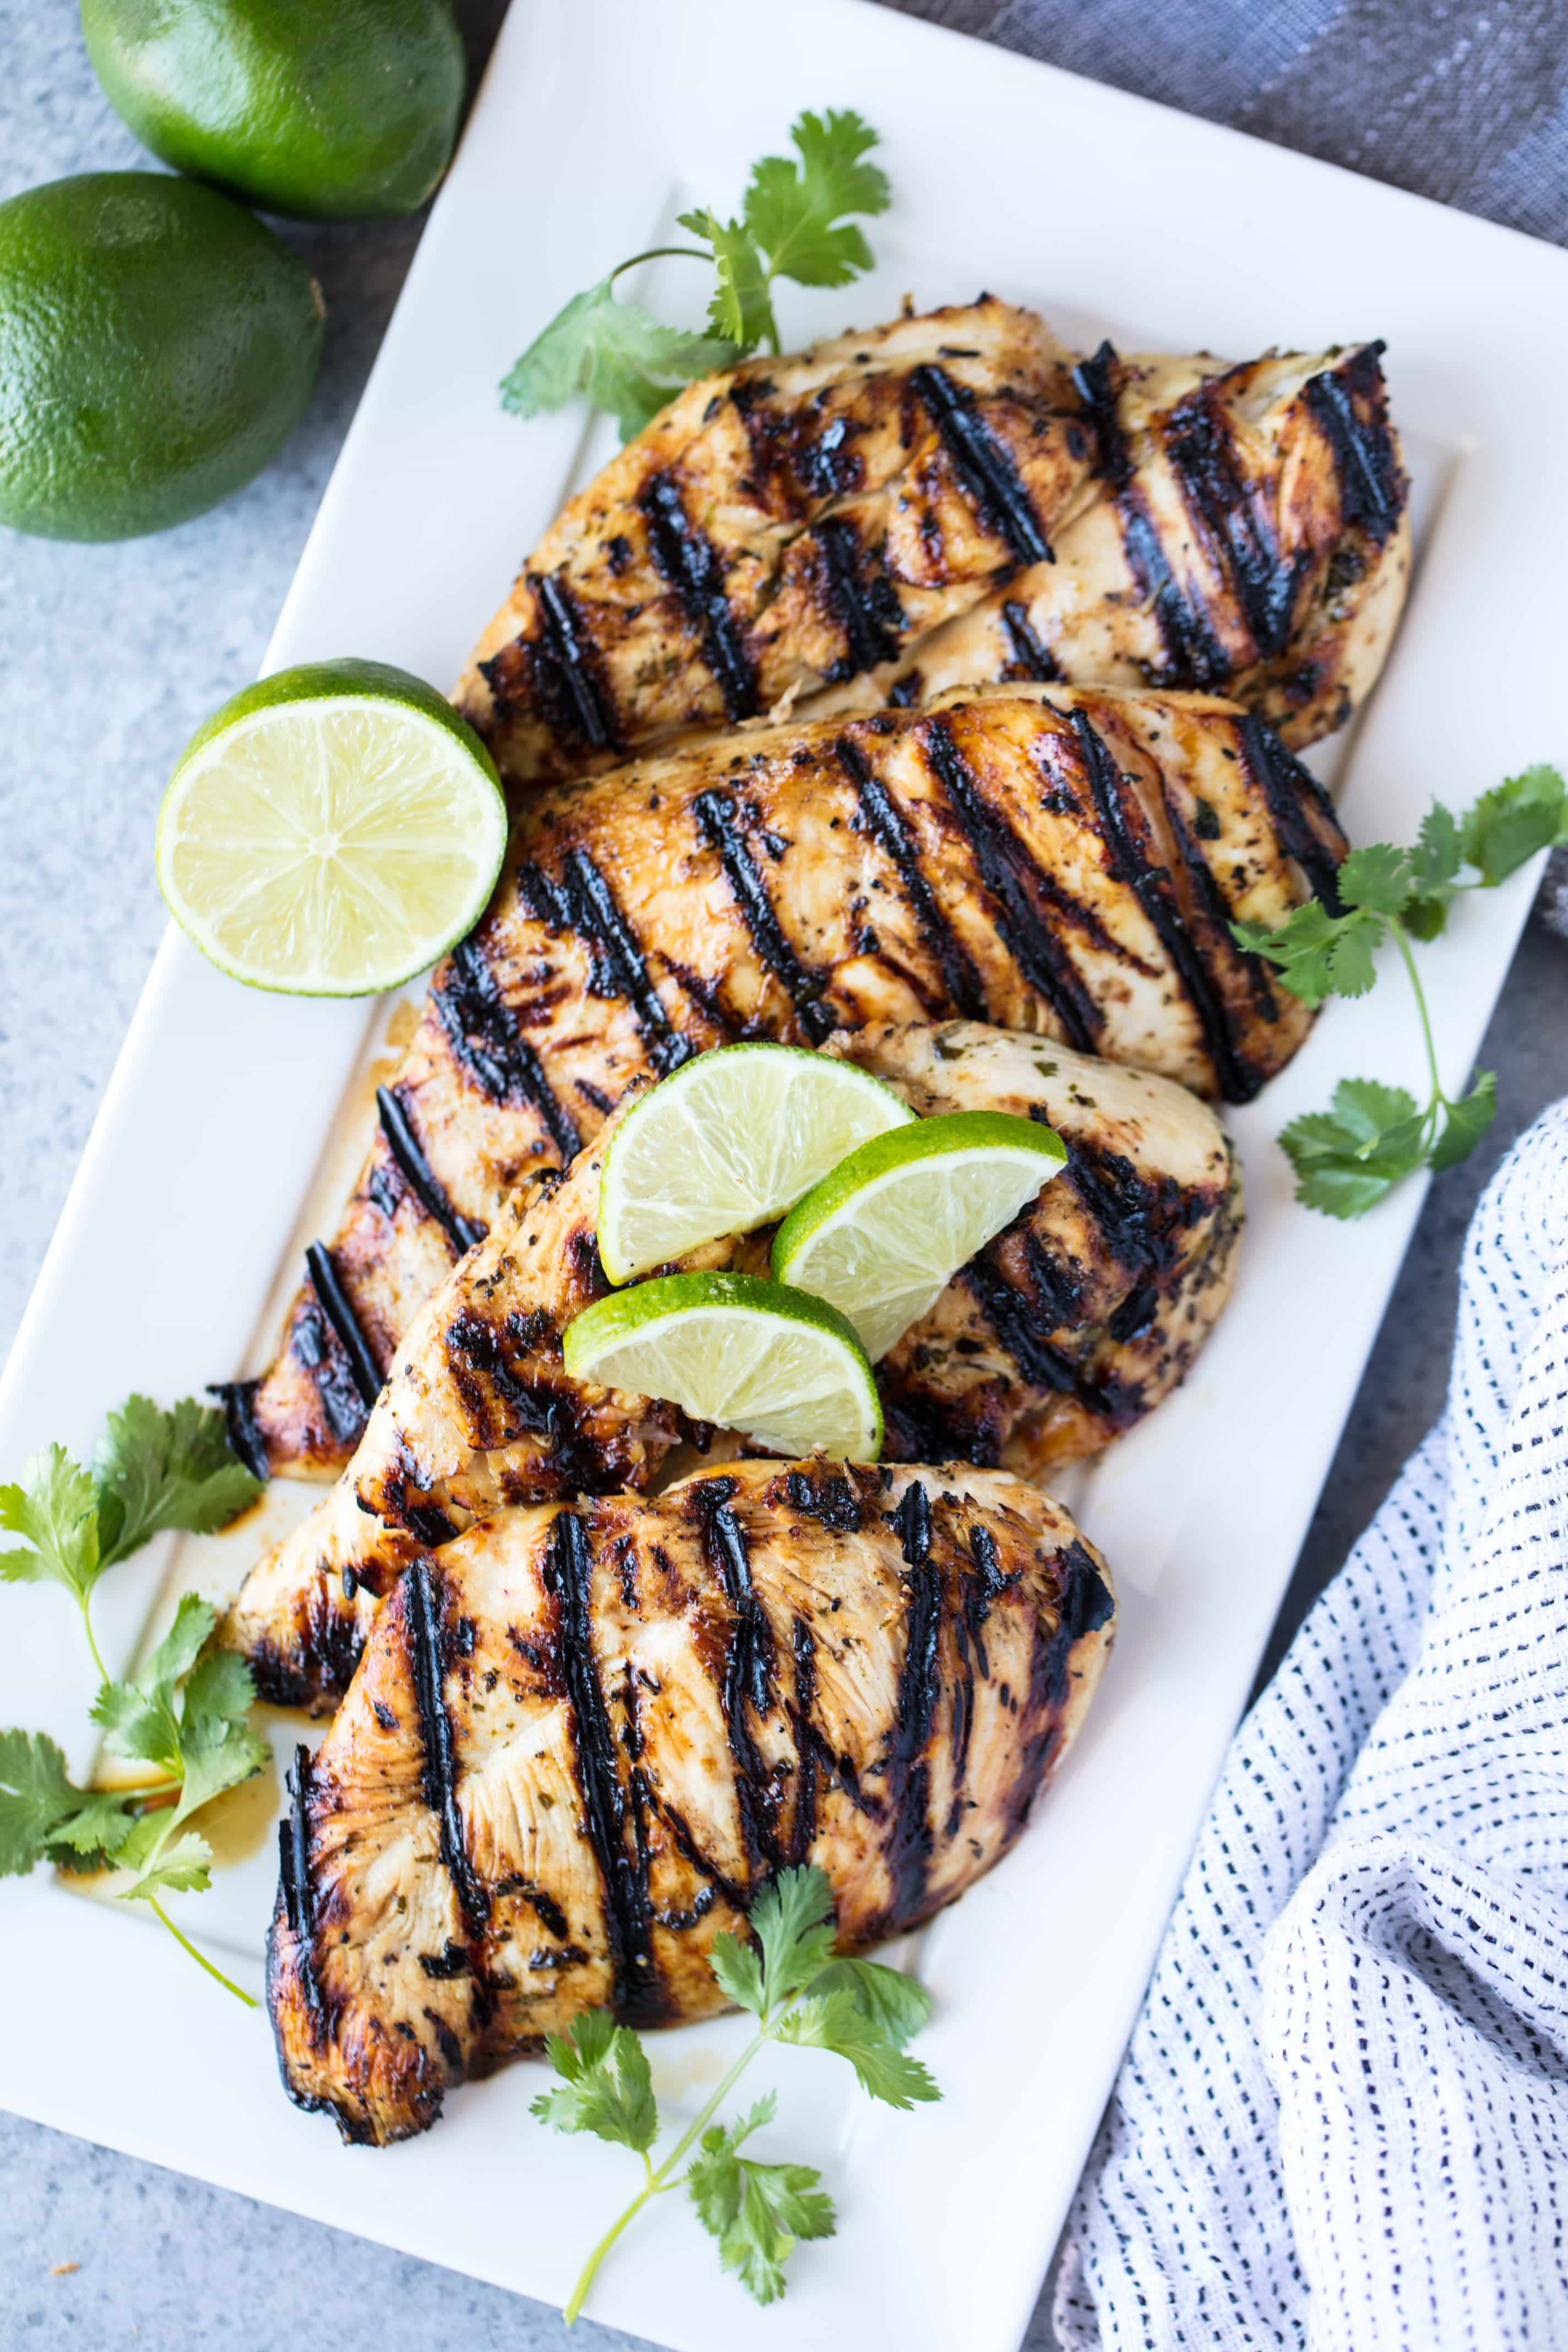 Four pieces of margarita grilled chicken breasts on a white serving platter with some sliced limes on top